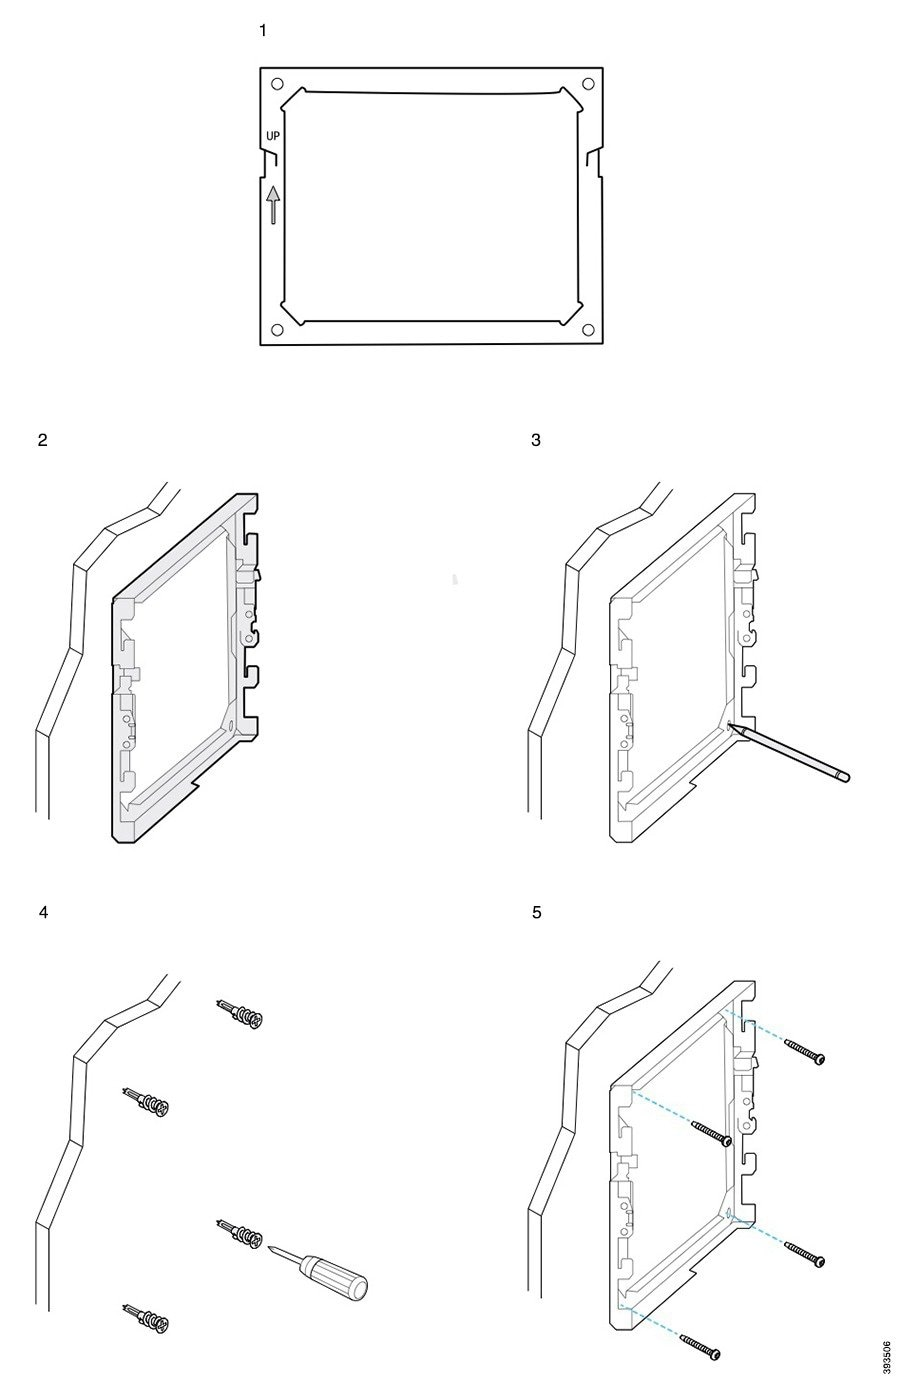 hight resolution of the following diagram illustrates attaching a cisco ip phone 7800 and 8800 series wall bracket to a wall